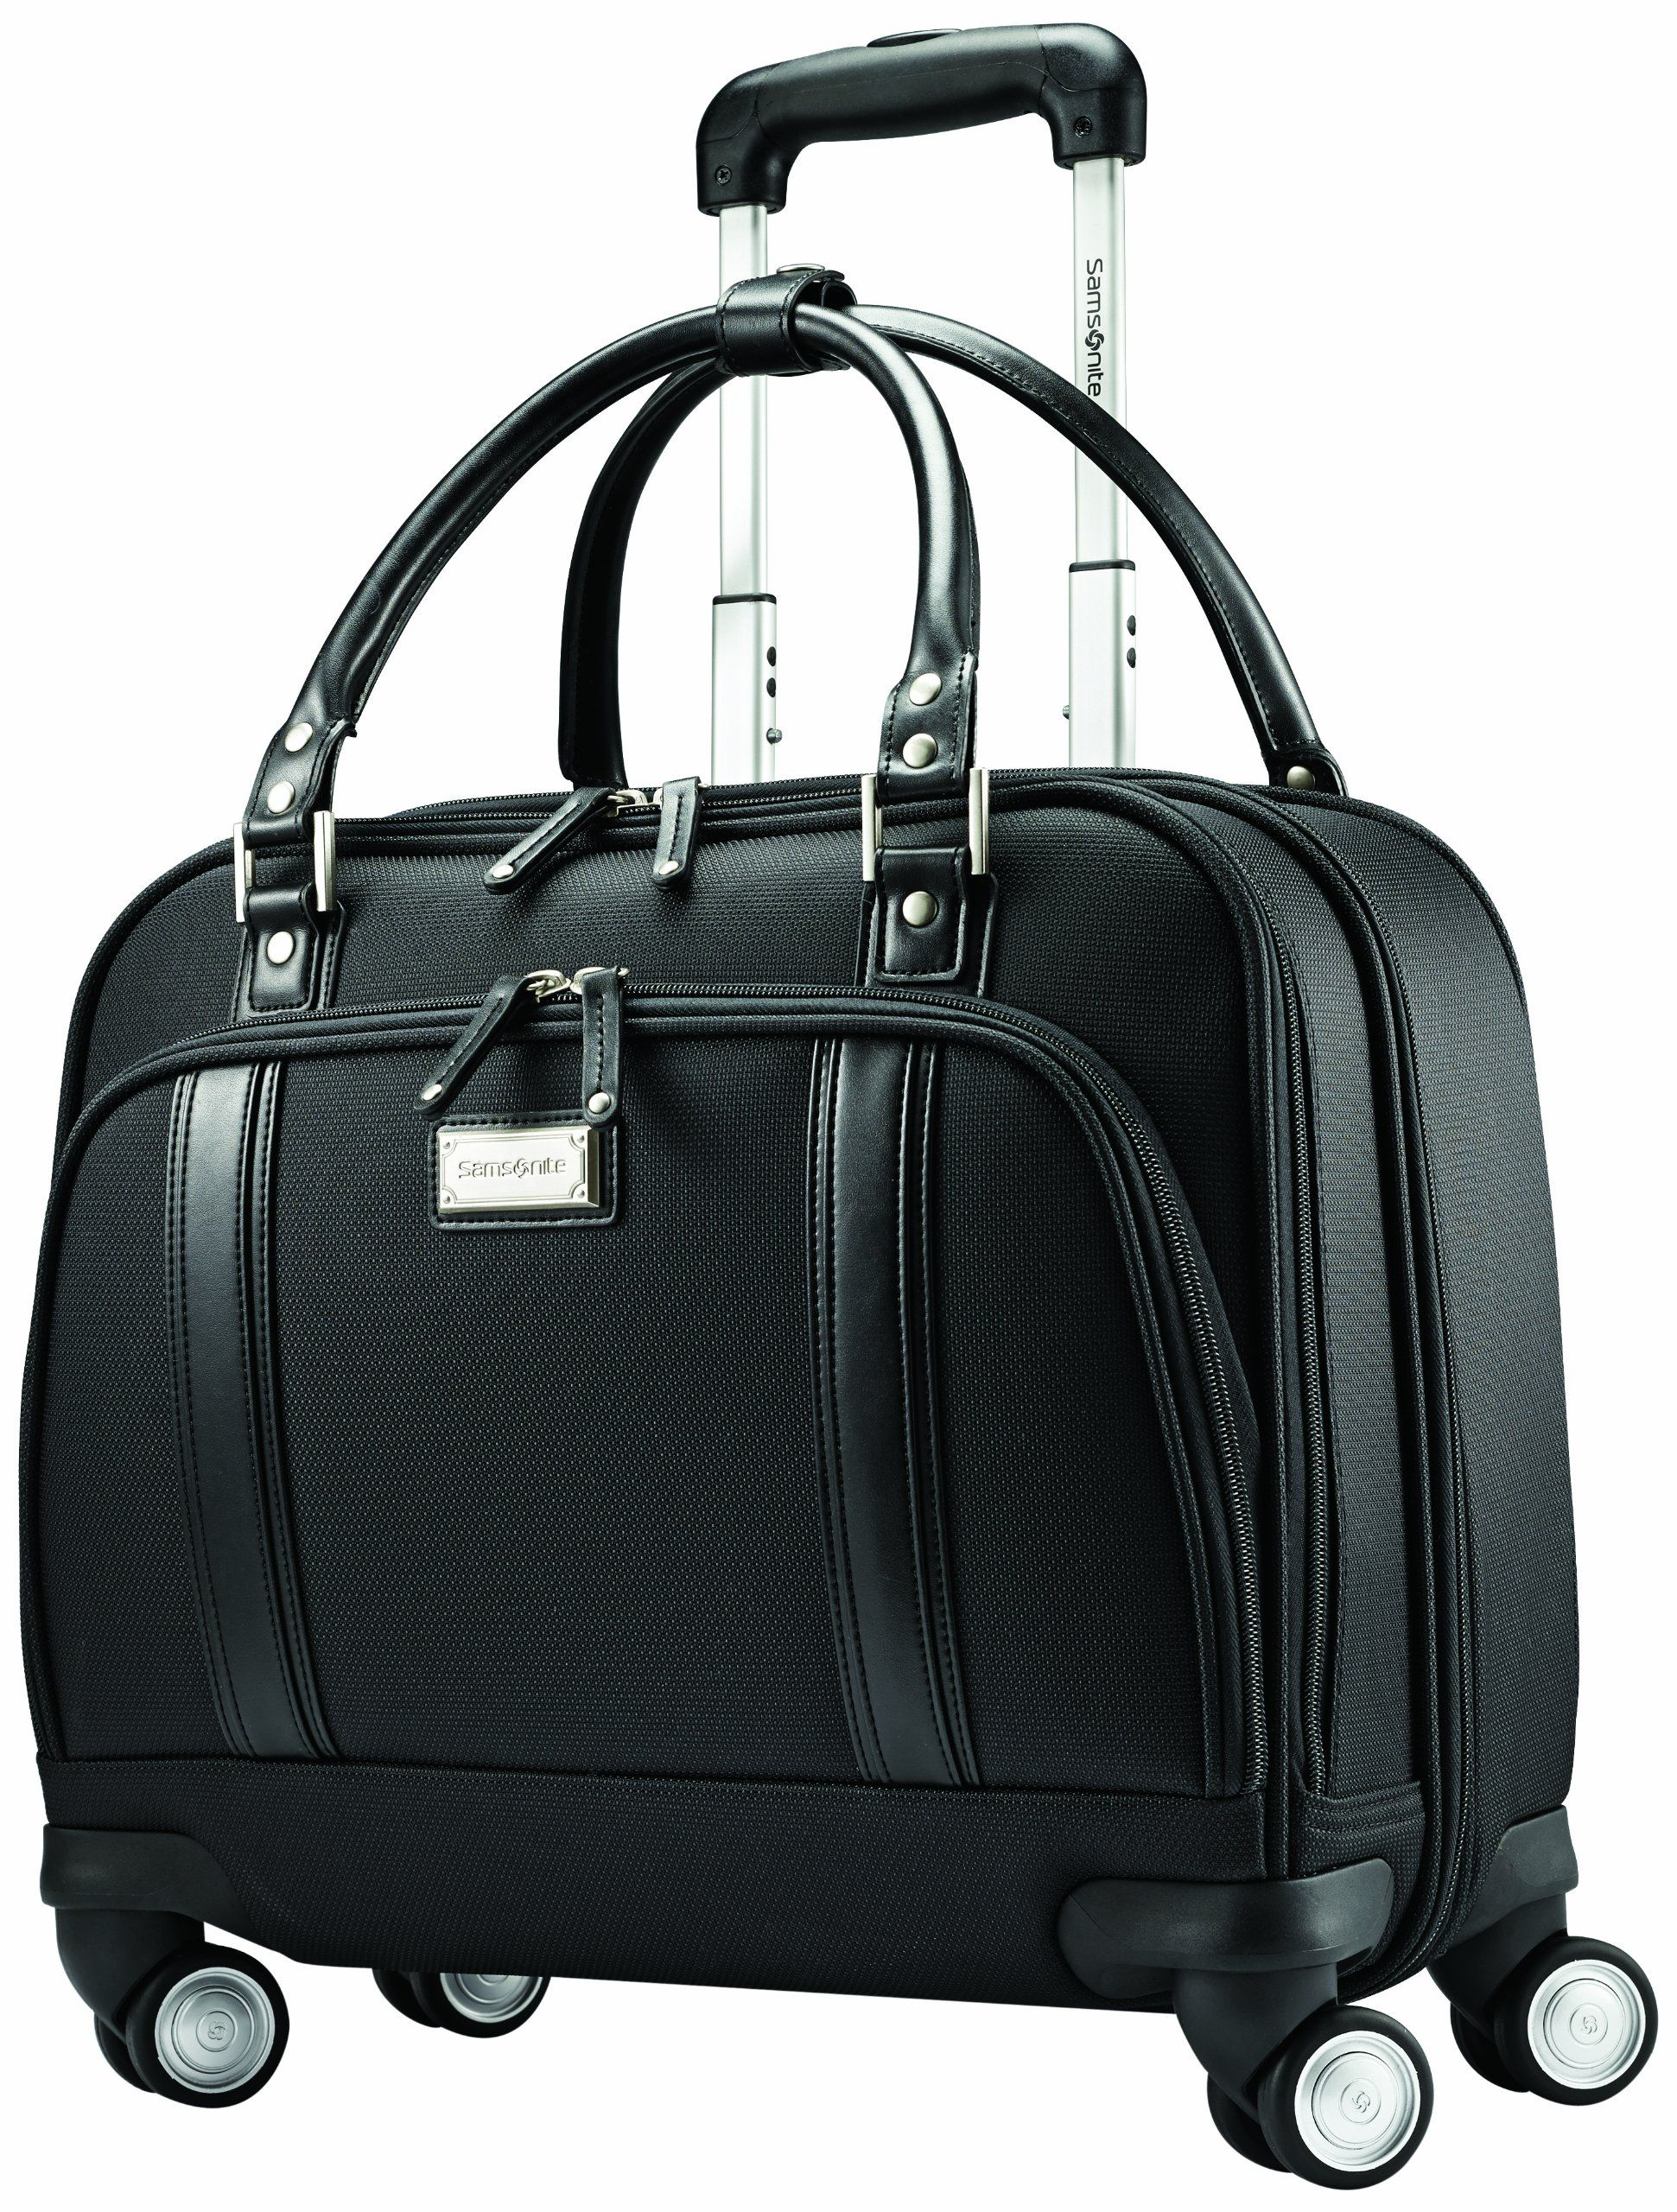 8cc7ce148 Samsonite Luggage Women's Spinner Mobile Office, Black, One Size ...